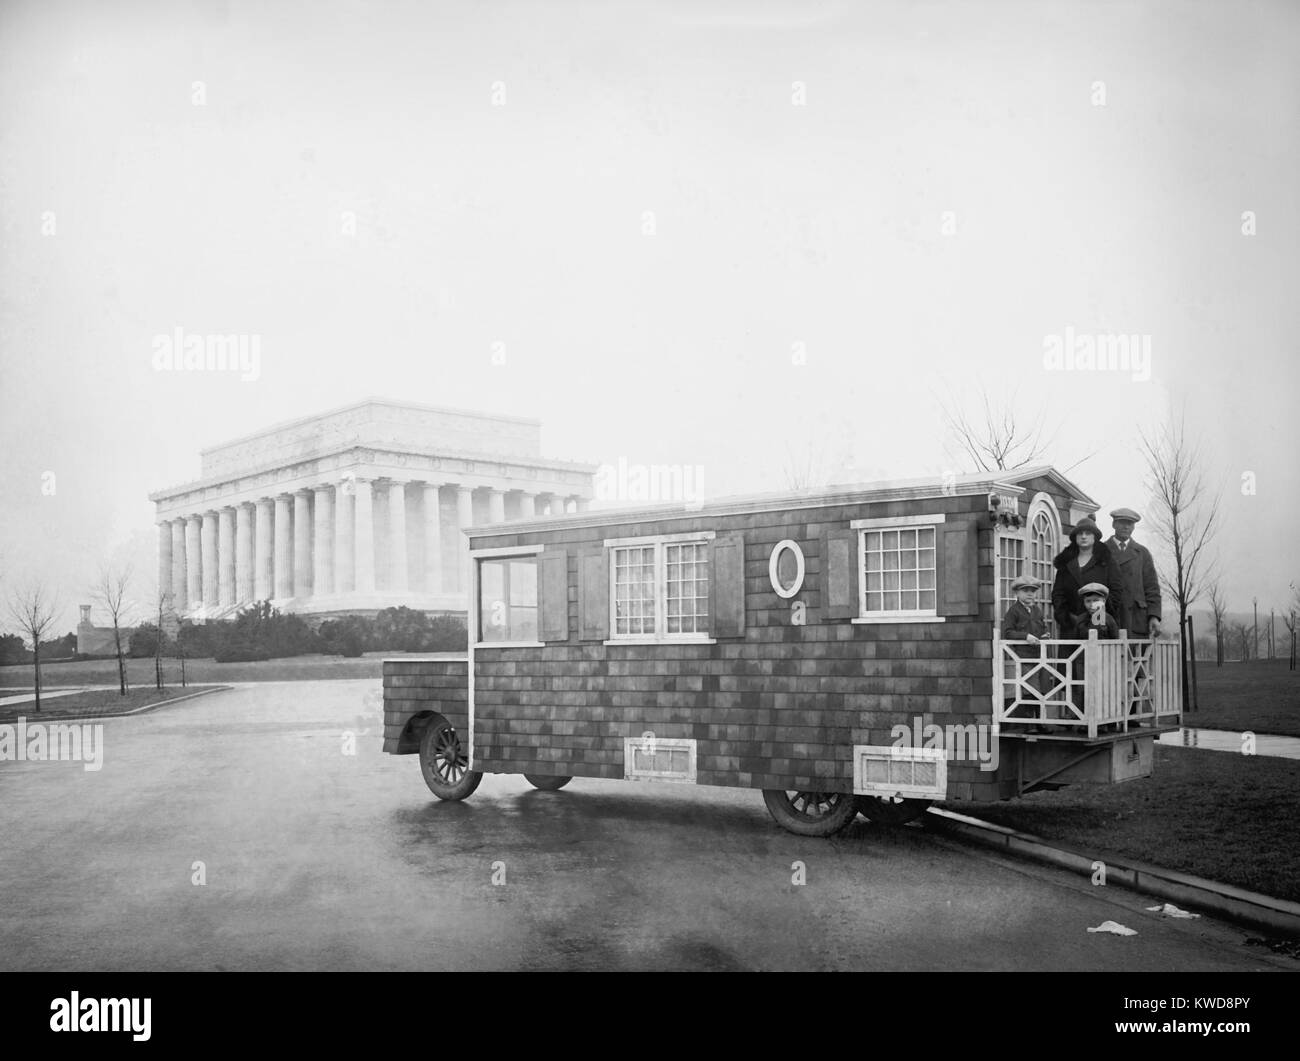 'Bungalow Auto' parked near the Lincoln Memorial in Washington, D.C. Feb.1, 1926. The house on wheels belongs - Stock Image